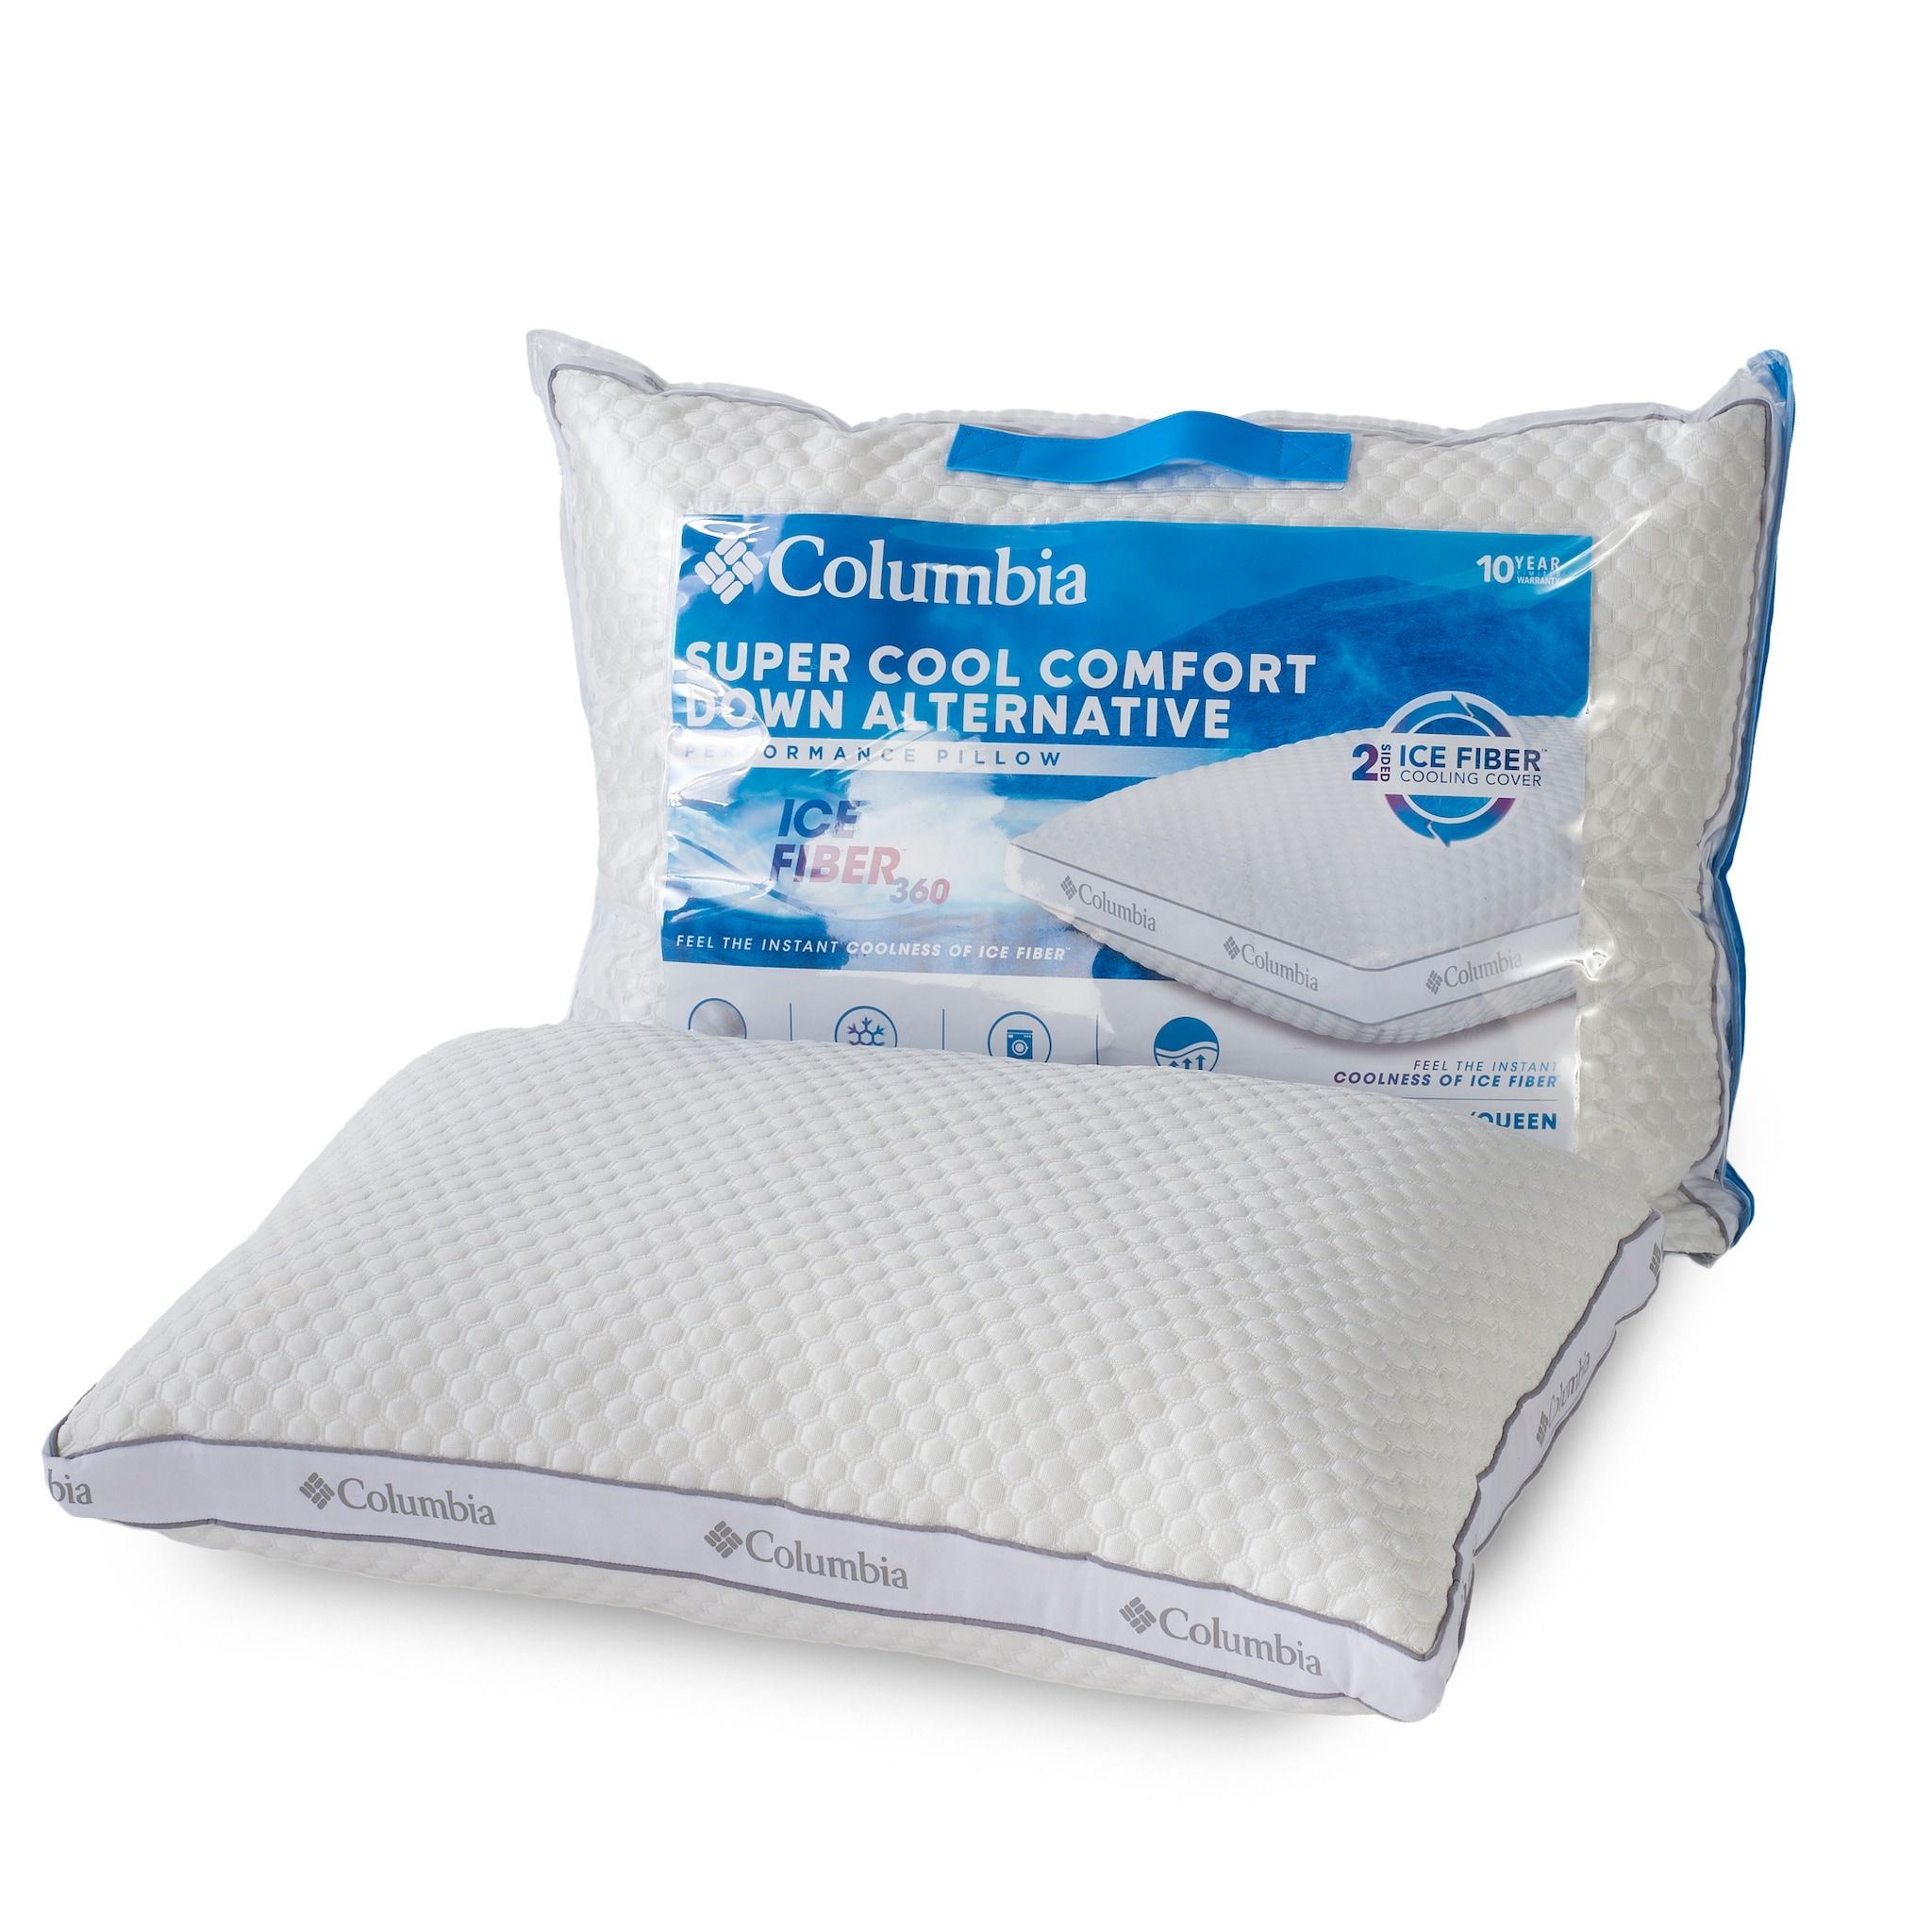 Columbia Ice Fiber Side Sleeper Down Alternative Pillow Columbia